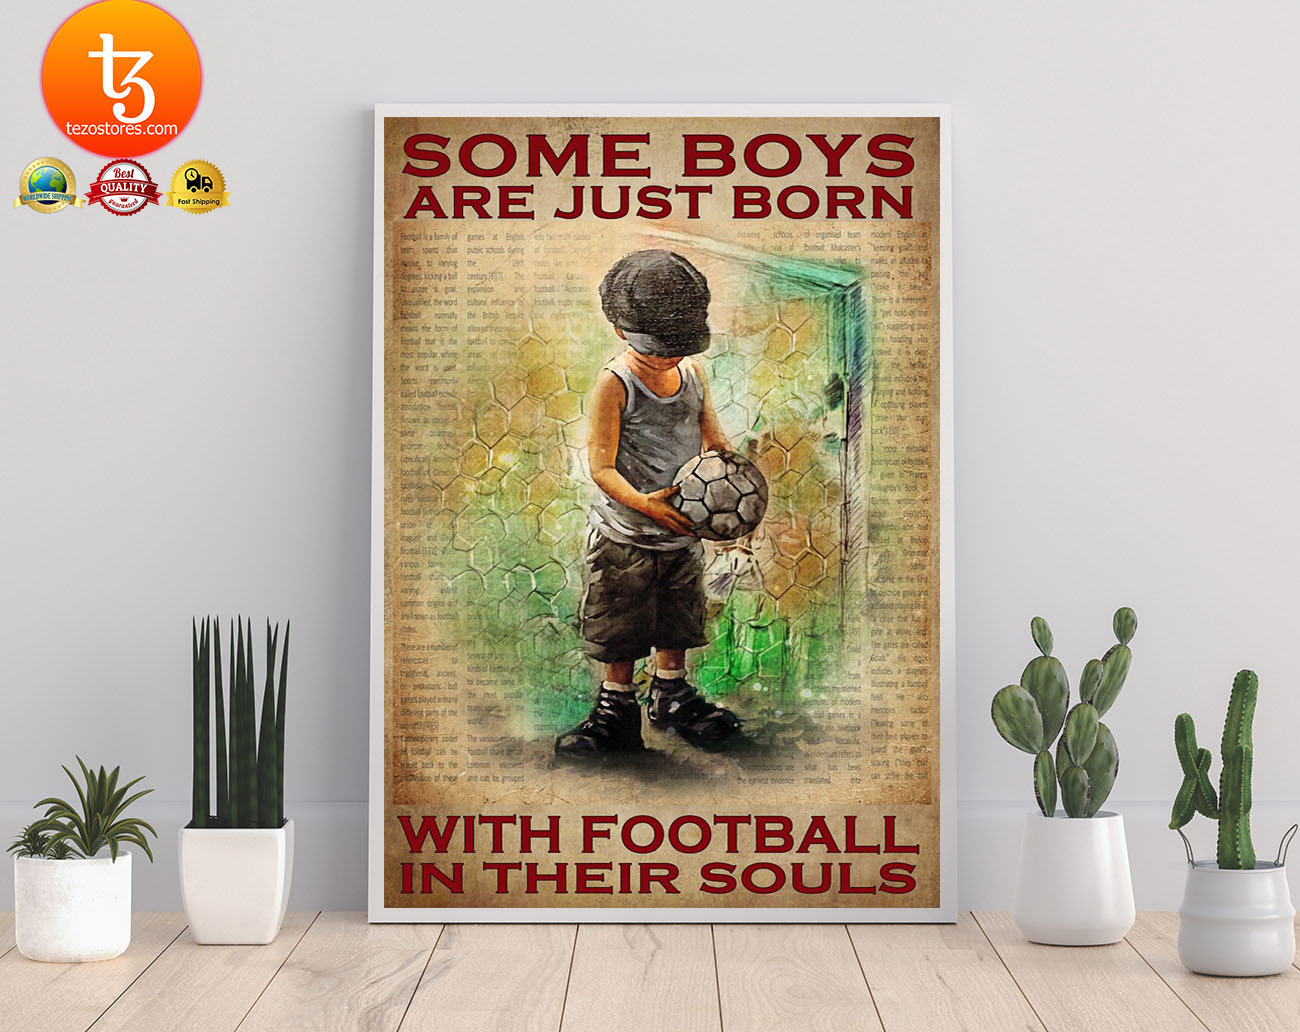 Some boys are just born with football in their souls poster 3